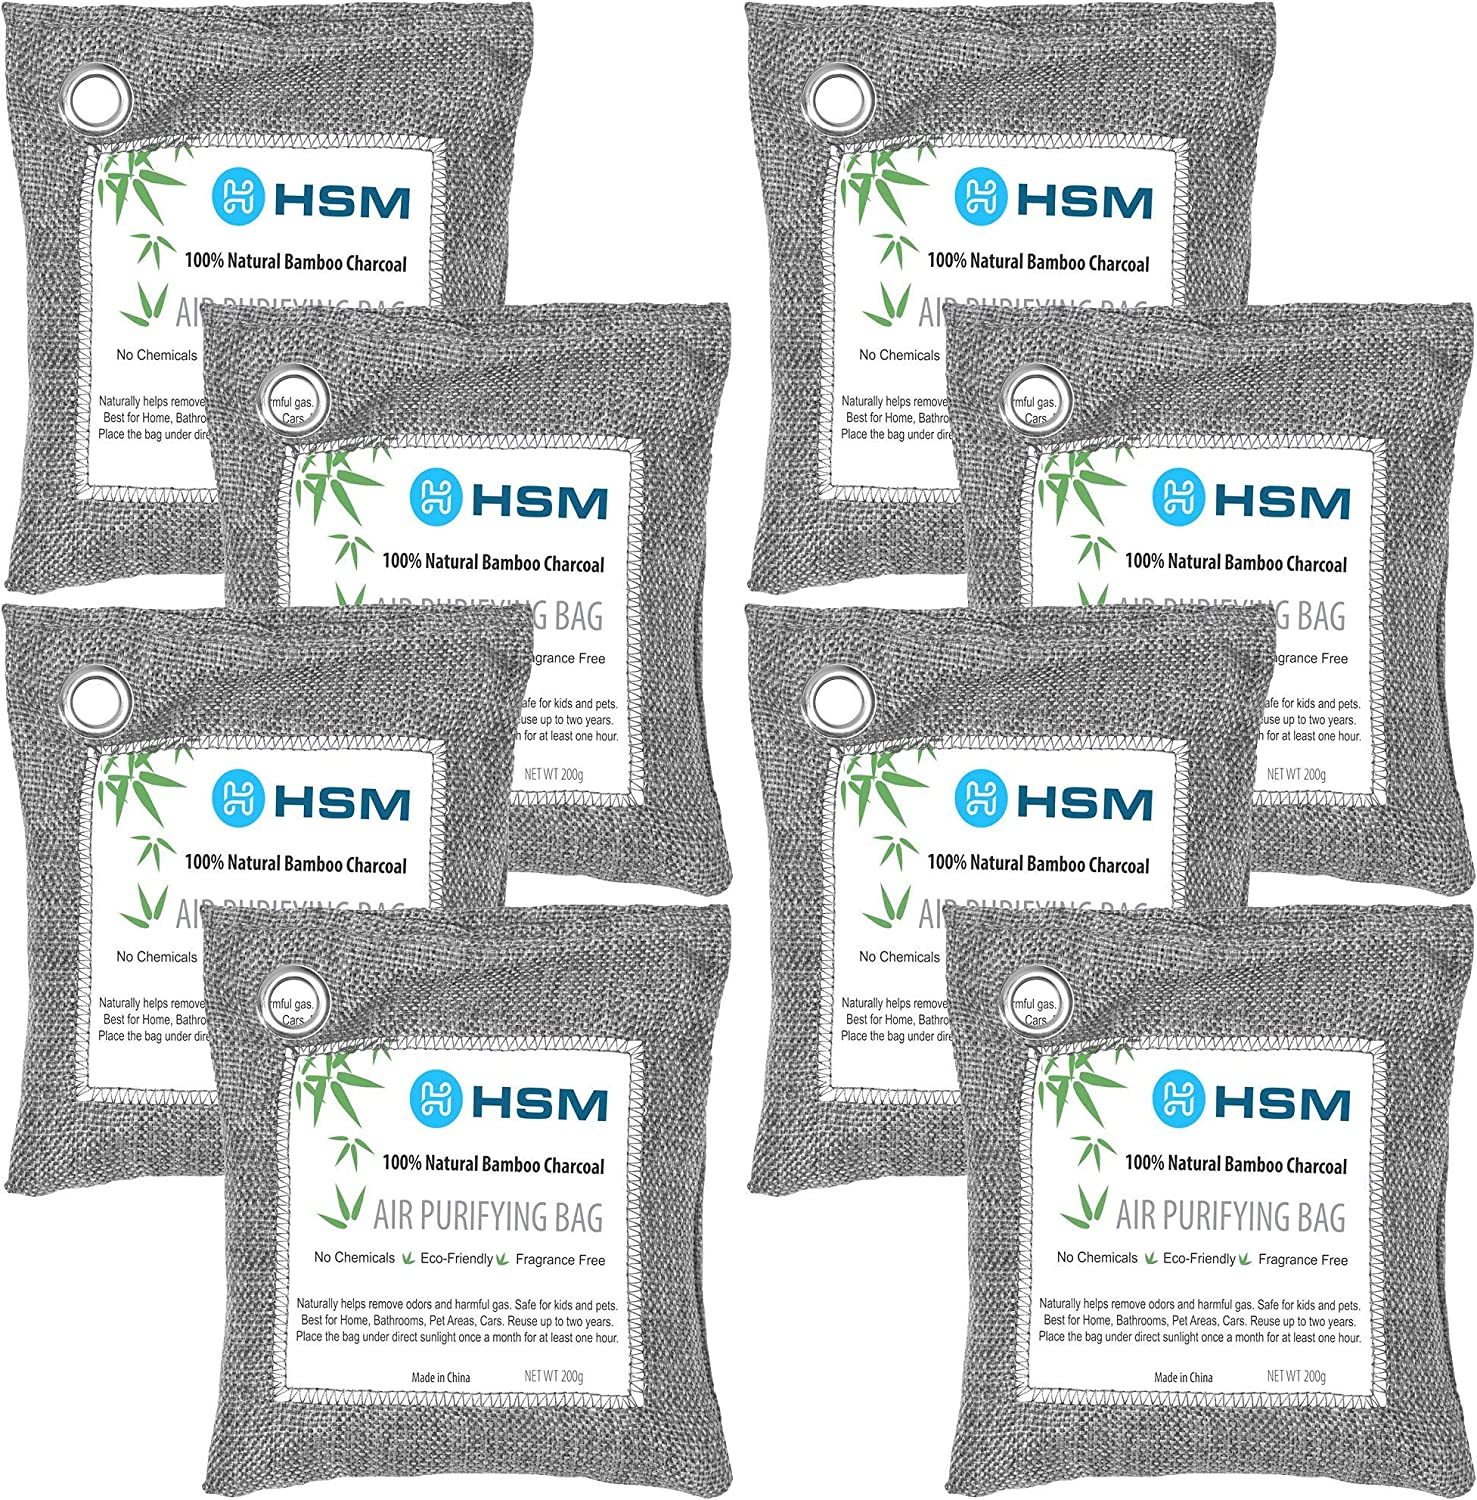 HSM MED SUPPLY Bamboo Charcoal Air Purifying Bags (8 Pack), Charcoal Bags Odor Absorber for Home (Pet Friendly) - Charcoal Air Purifying Bags (8 x 200g)